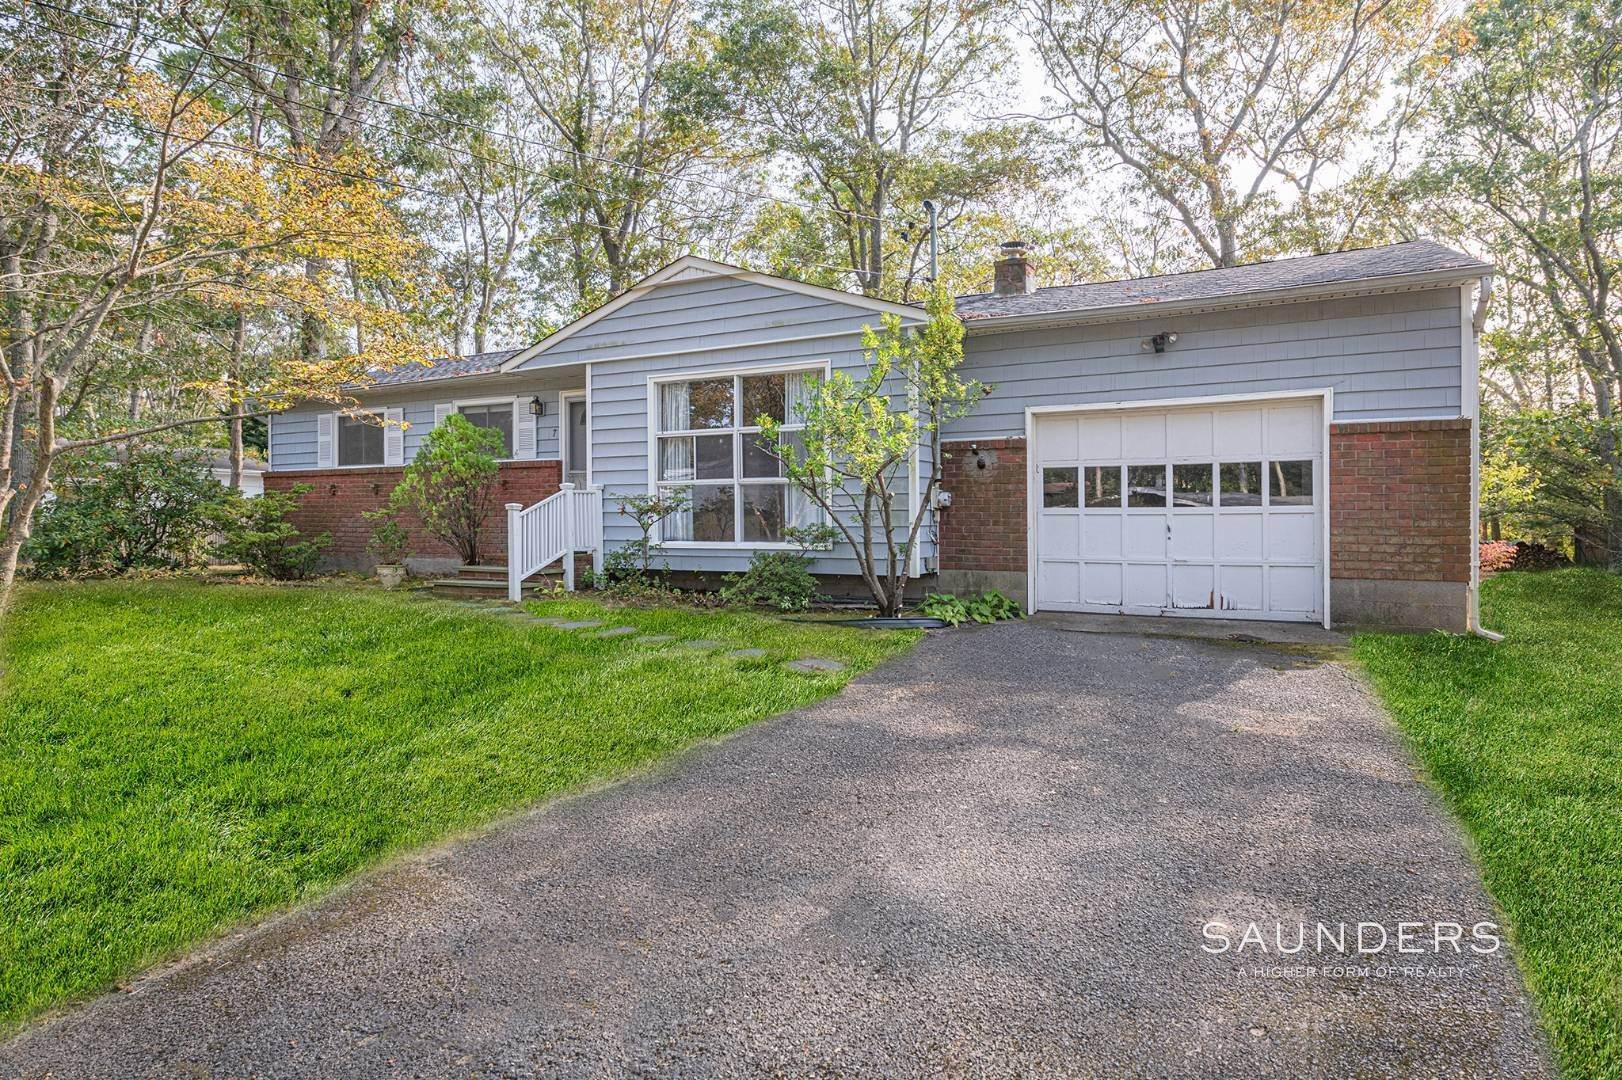 Single Family Homes for Sale at Desirable Tiana Shores Ranch Home With Great Potential 7 Cottage Lane, Hampton Bays, NY 11946